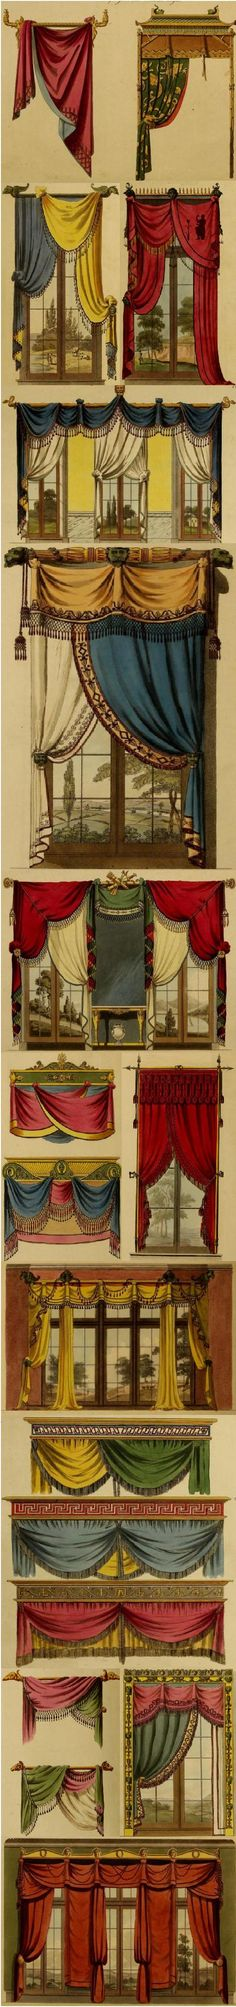 drapery ideas - 1808, Collection of Designs for Household Furniture and Interior Decoration, in the Most Approved and Elegant Taste